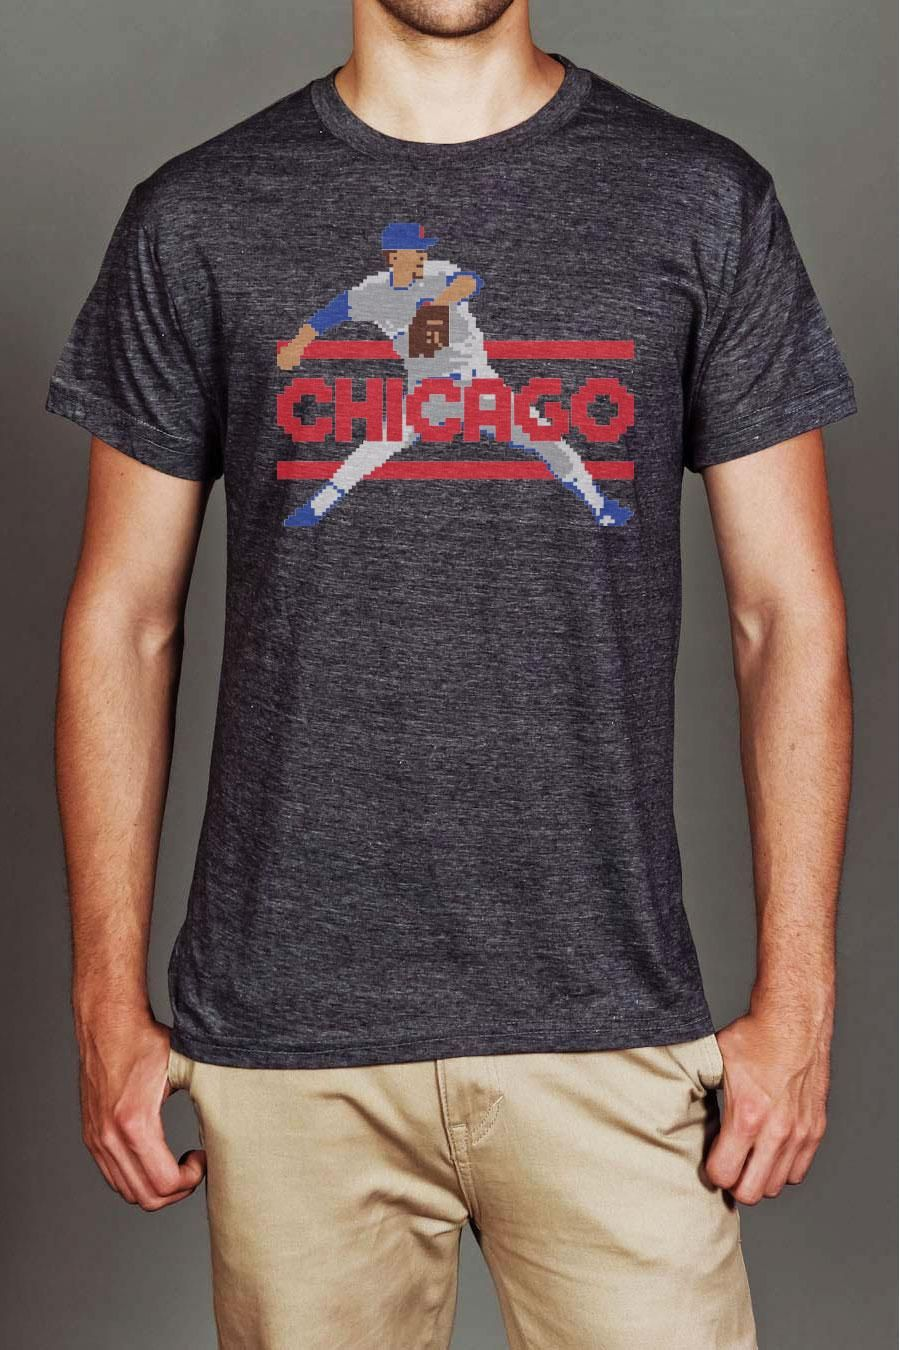 8 BIT APPAREL CHICAGO NATIONAL PASTIME